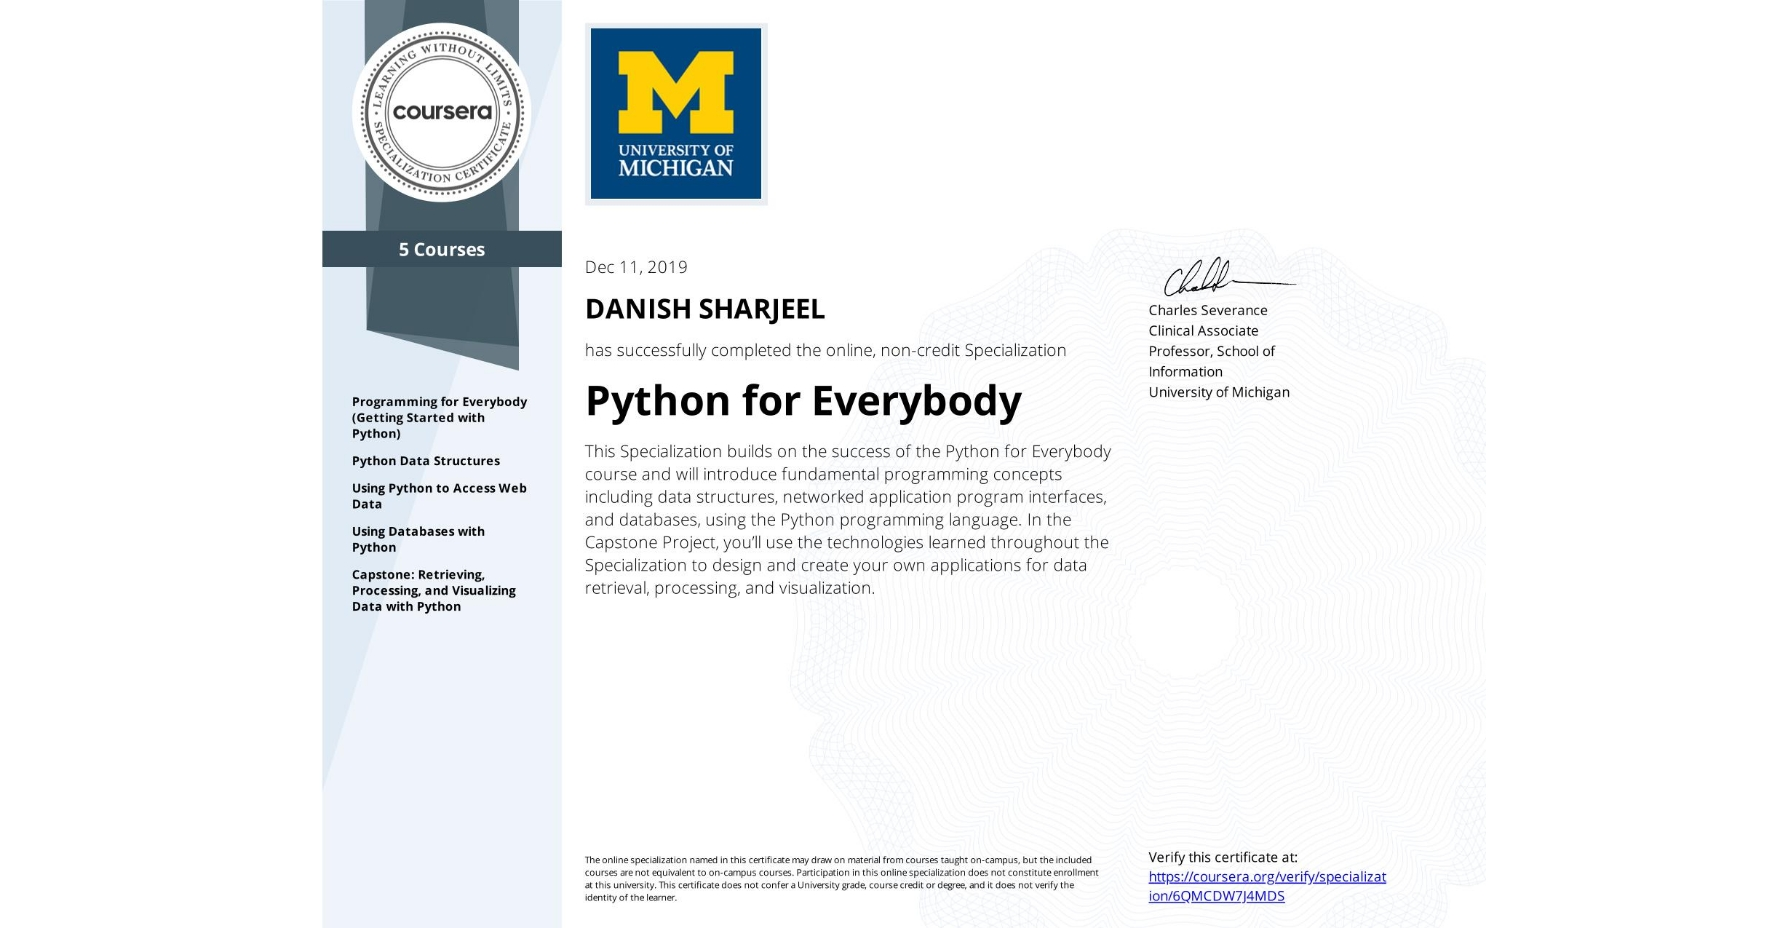 View certificate for Danish Sharjeel, Python for Everybody, offered through Coursera. This Specialization builds on the success of the Python for Everybody course and will introduce fundamental programming concepts including data structures, networked application program interfaces, and databases, using the Python programming language. In the Capstone Project, you'll use the technologies learned throughout the Specialization to design and create your own applications for data retrieval, processing, and visualization.